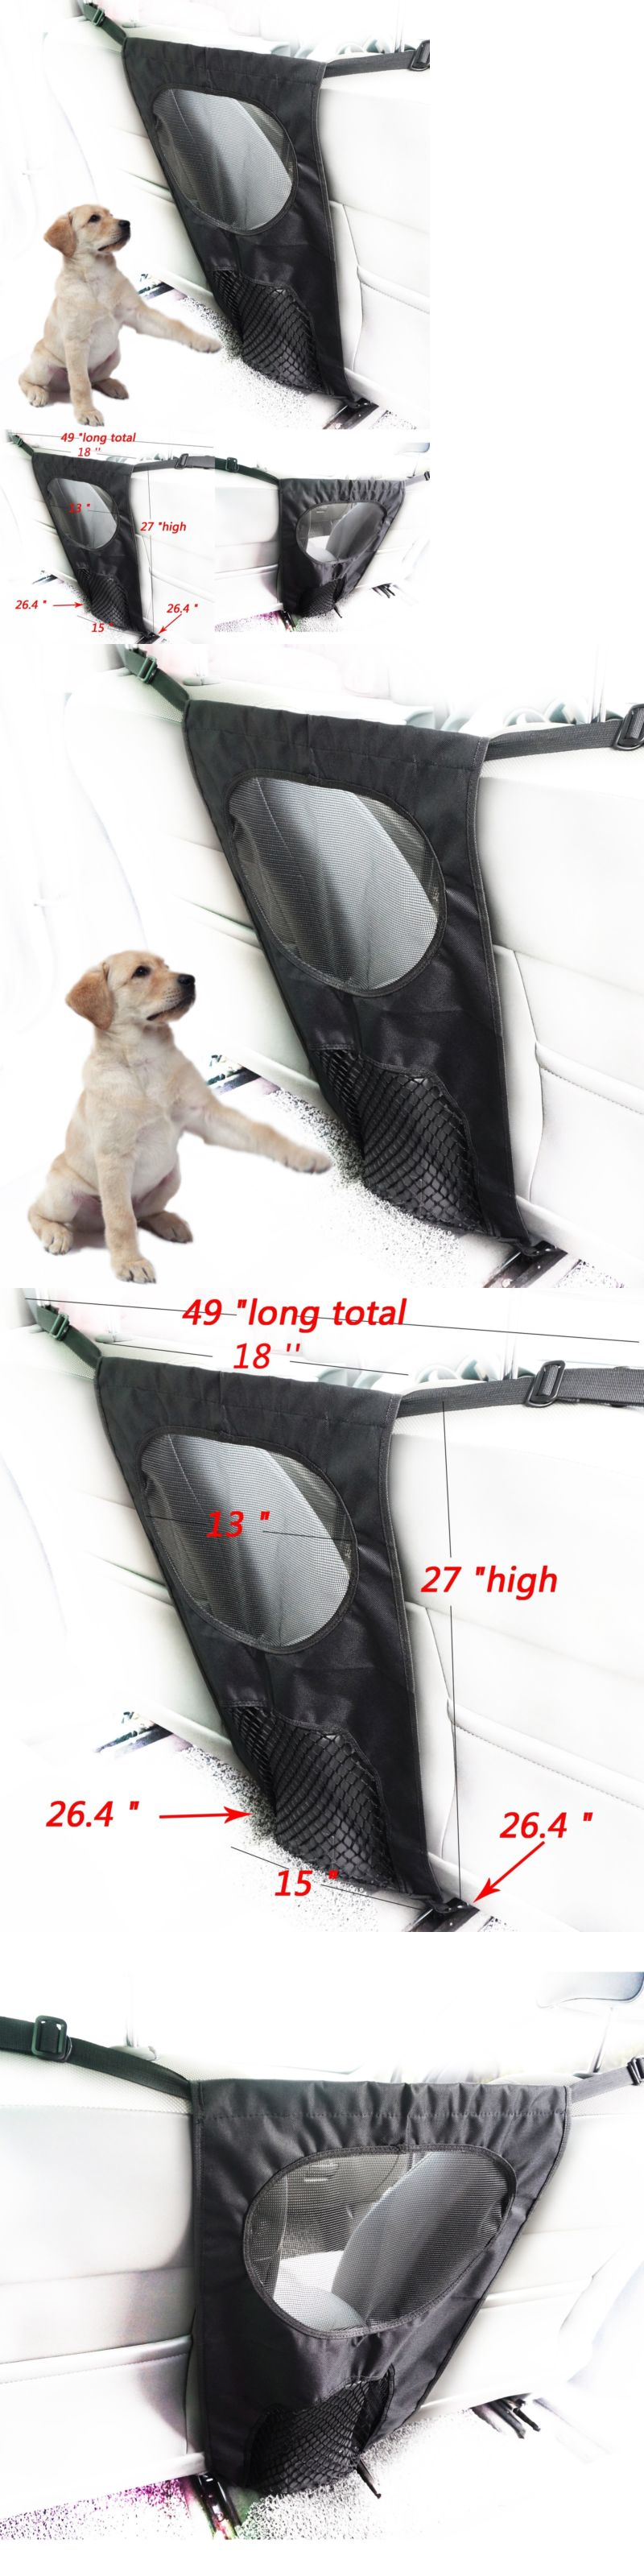 Car Seats and Barriers 46454: Universal Car Pet Barrier Mesh ...